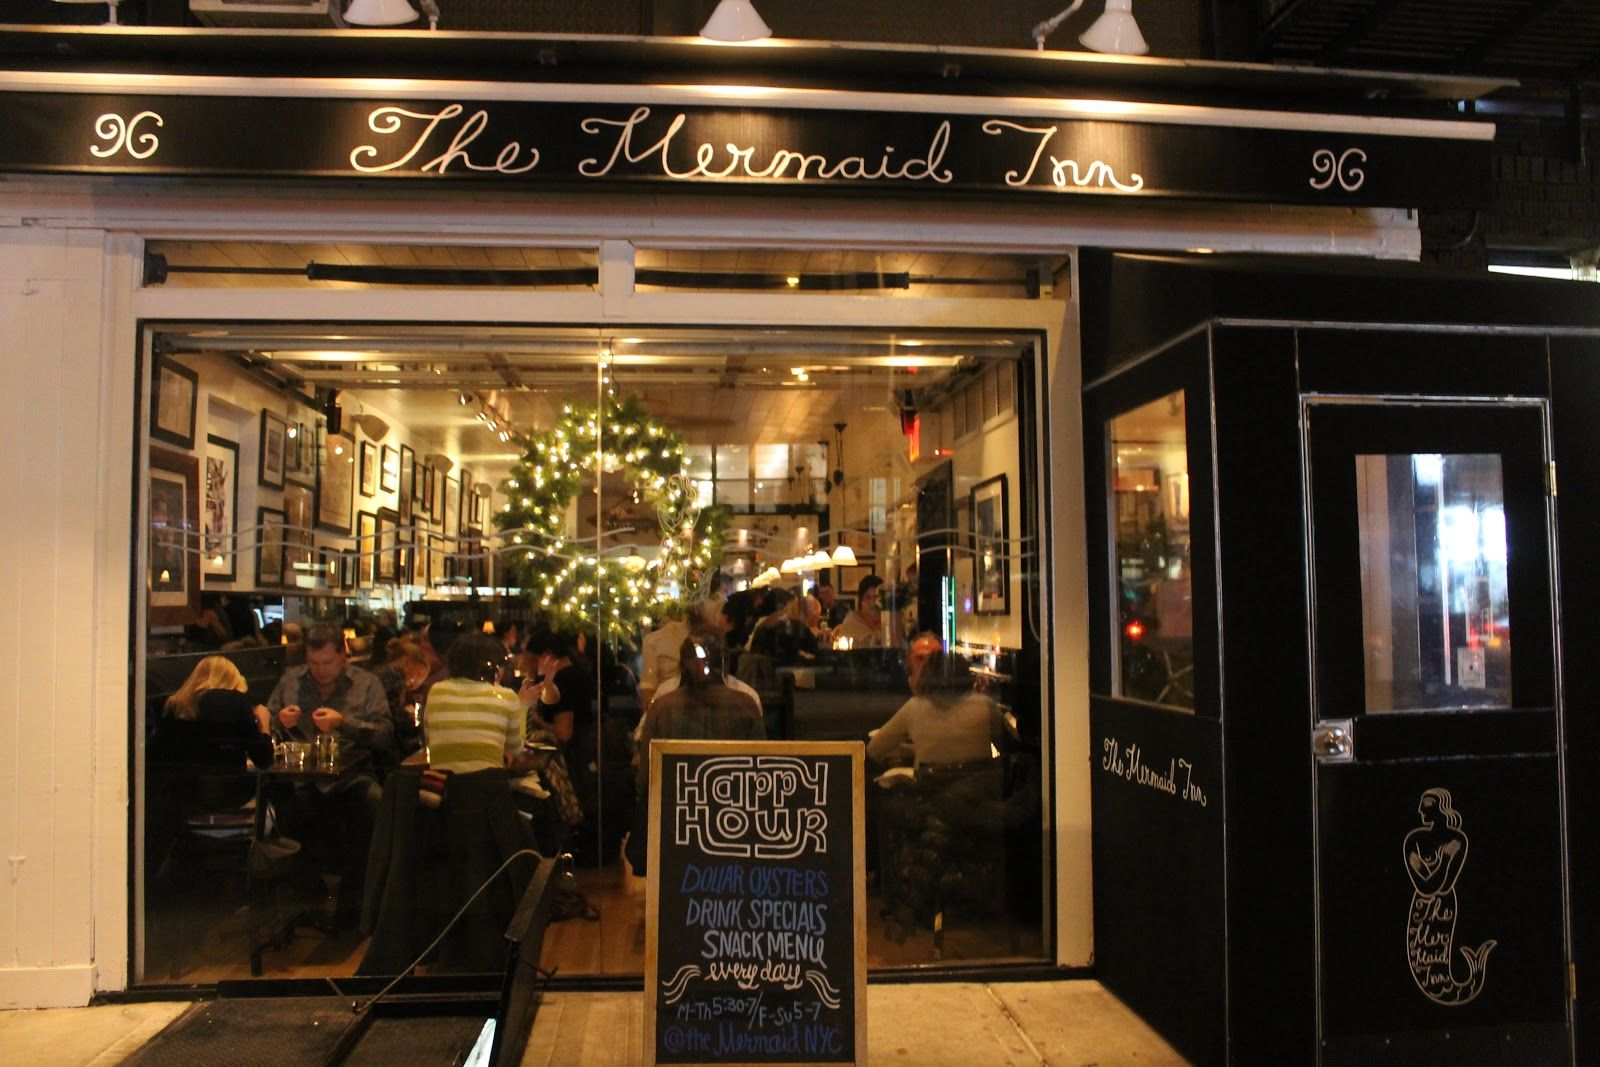 For some cozy camaraderie and freshest seafood during December, I head to either The #Mermaid #Inn or #Oyster Bar #Christmas